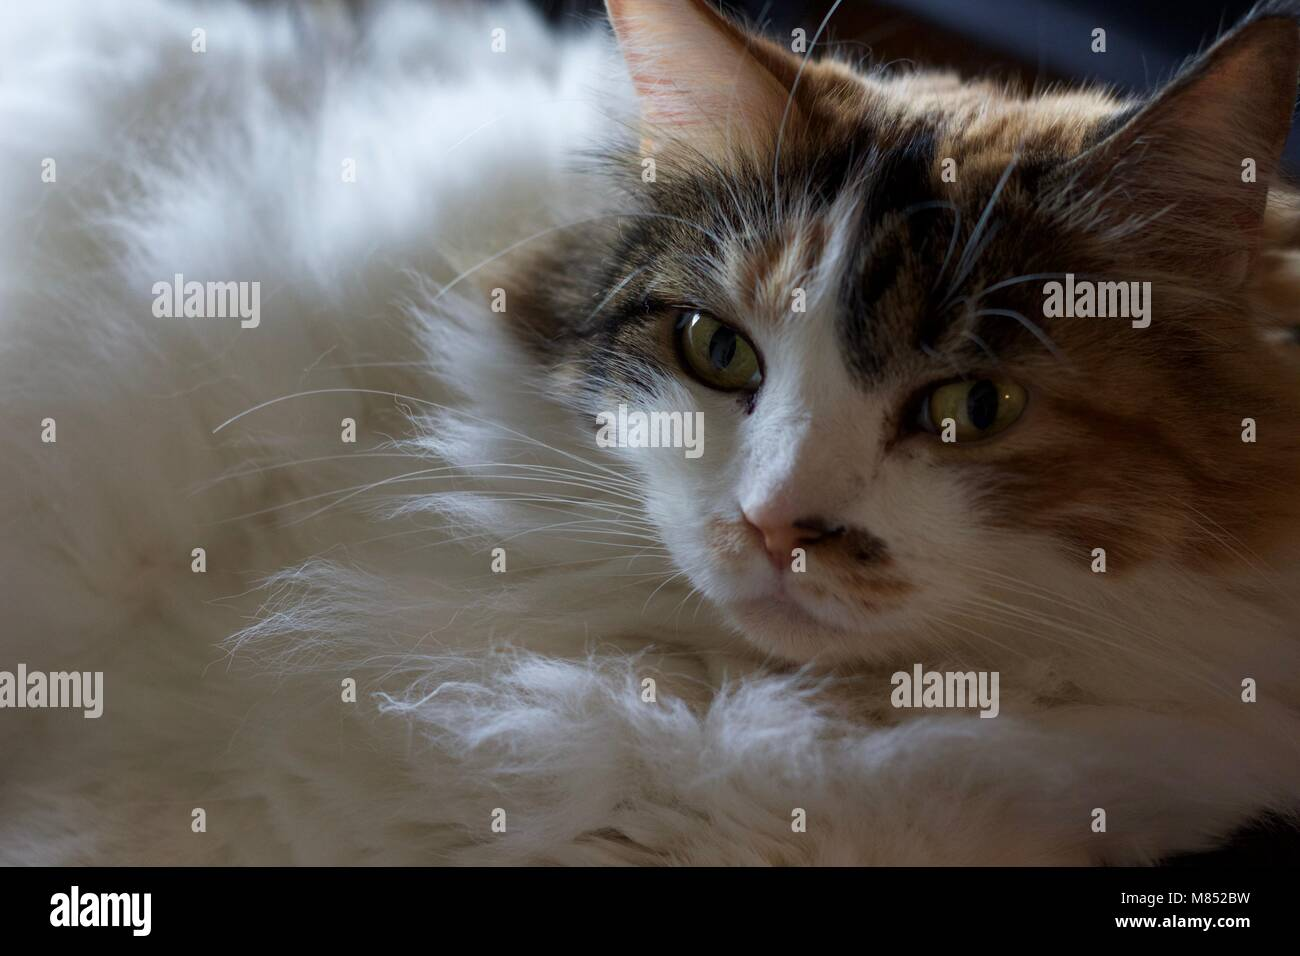 Fluffy cat lounging on sofa in living room. - Stock Image